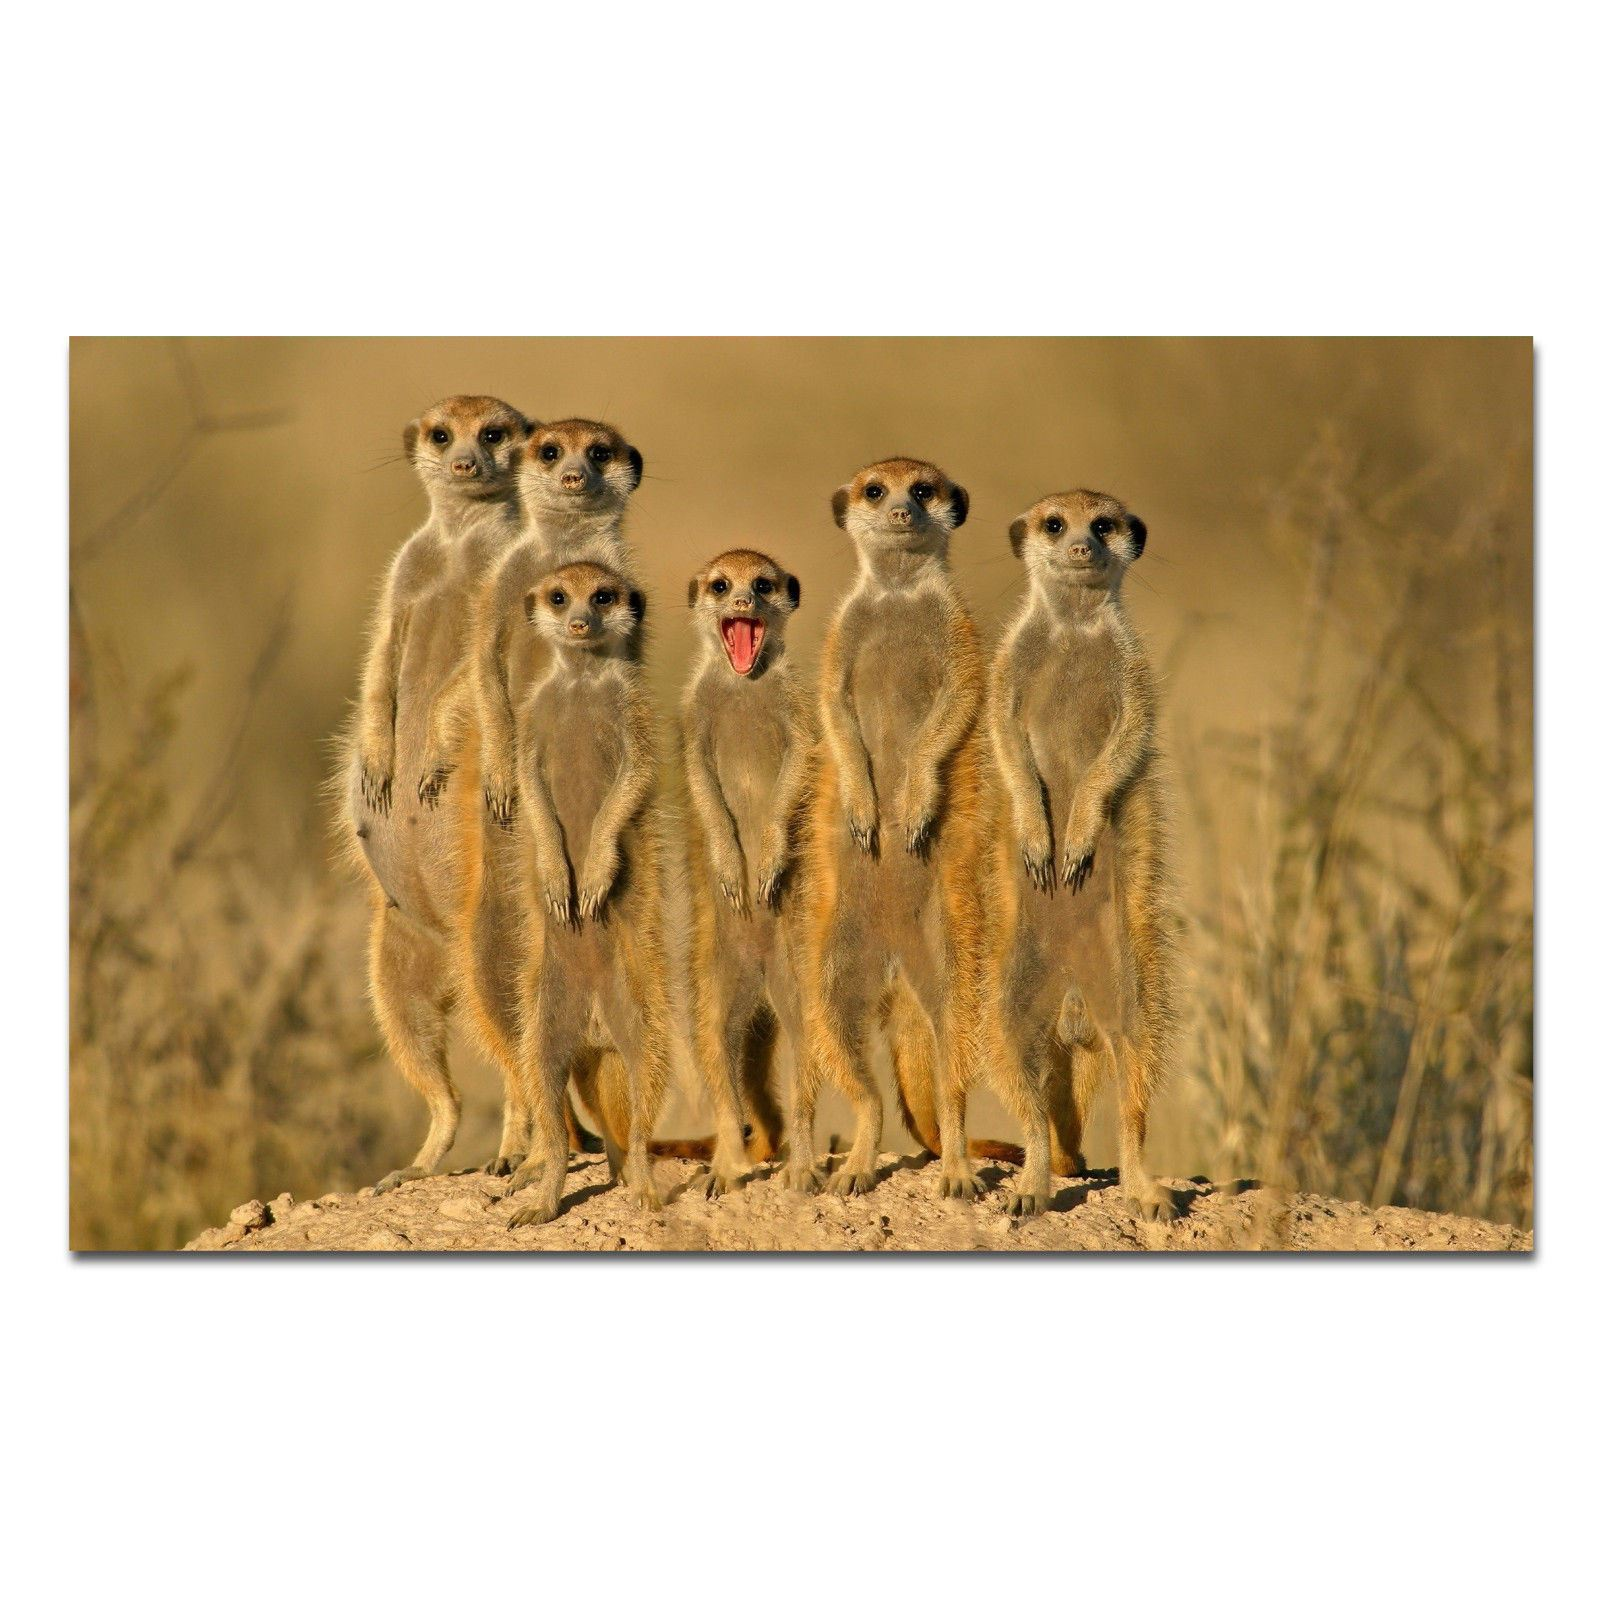 Elephant Kittens Meerkats 5 x Cute Animal Posters A3 Size Puppies Penguins